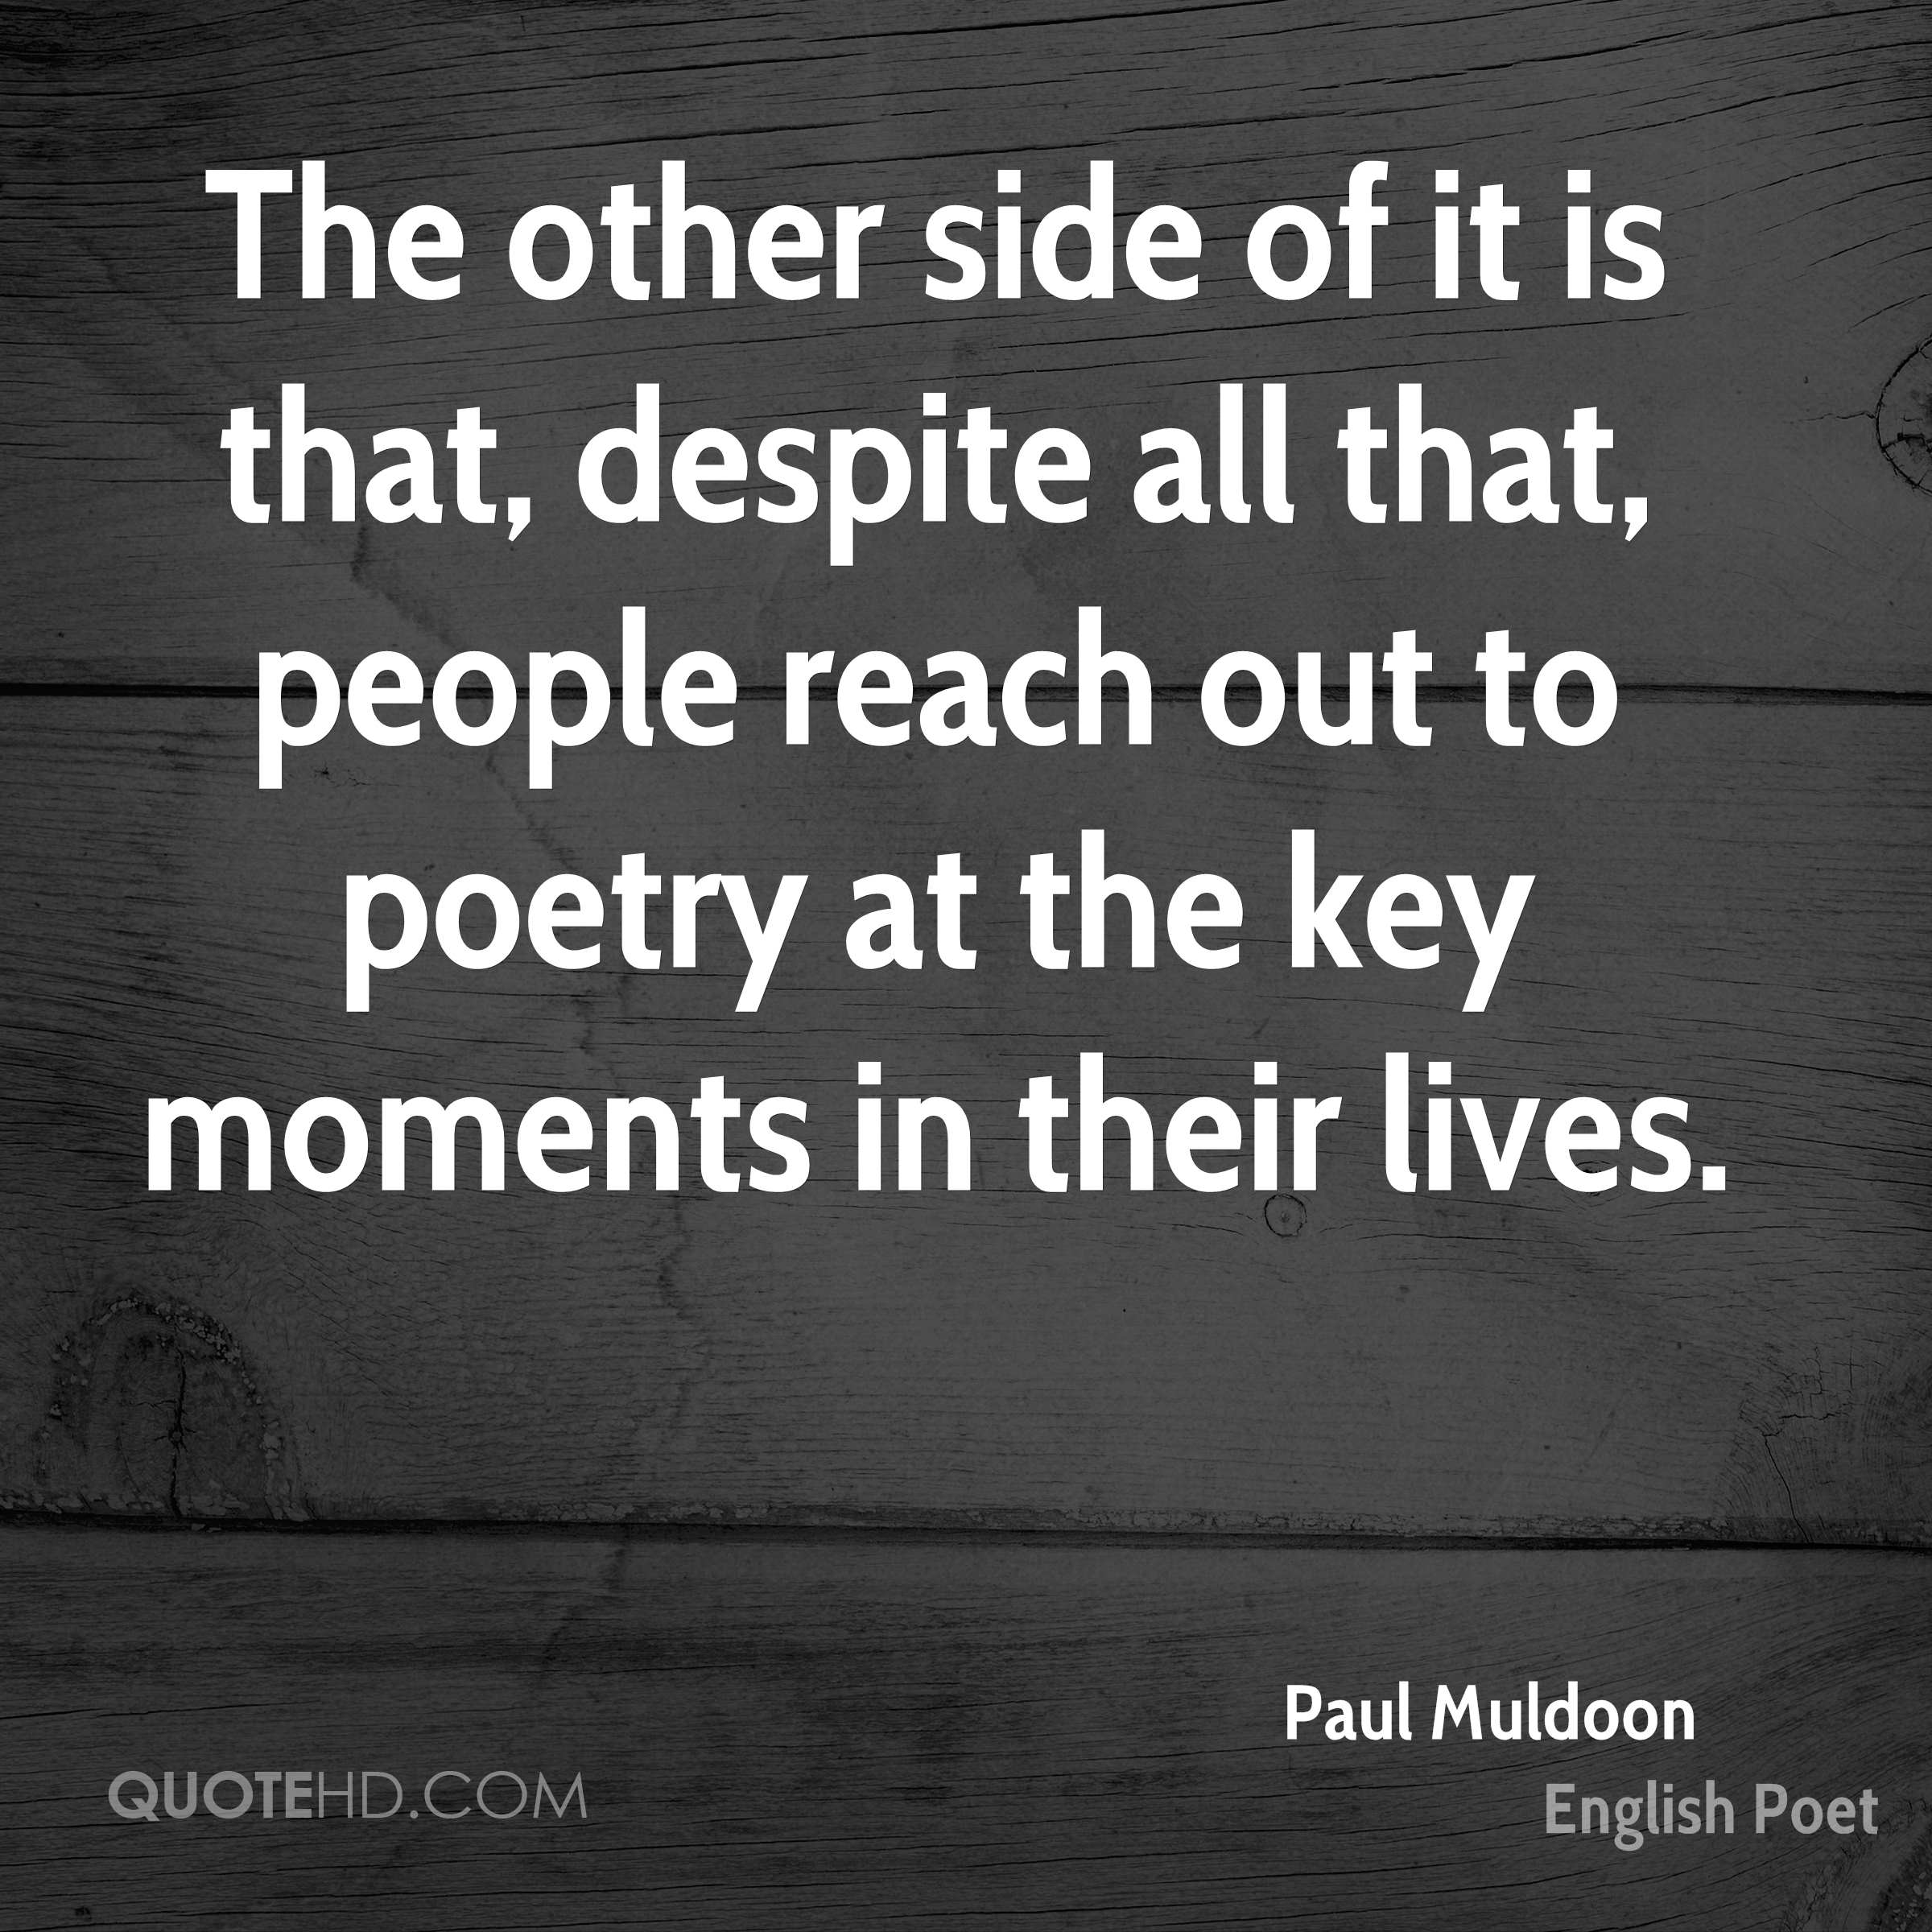 The other side of it is that, despite all that, people reach out to poetry at the key moments in their lives.